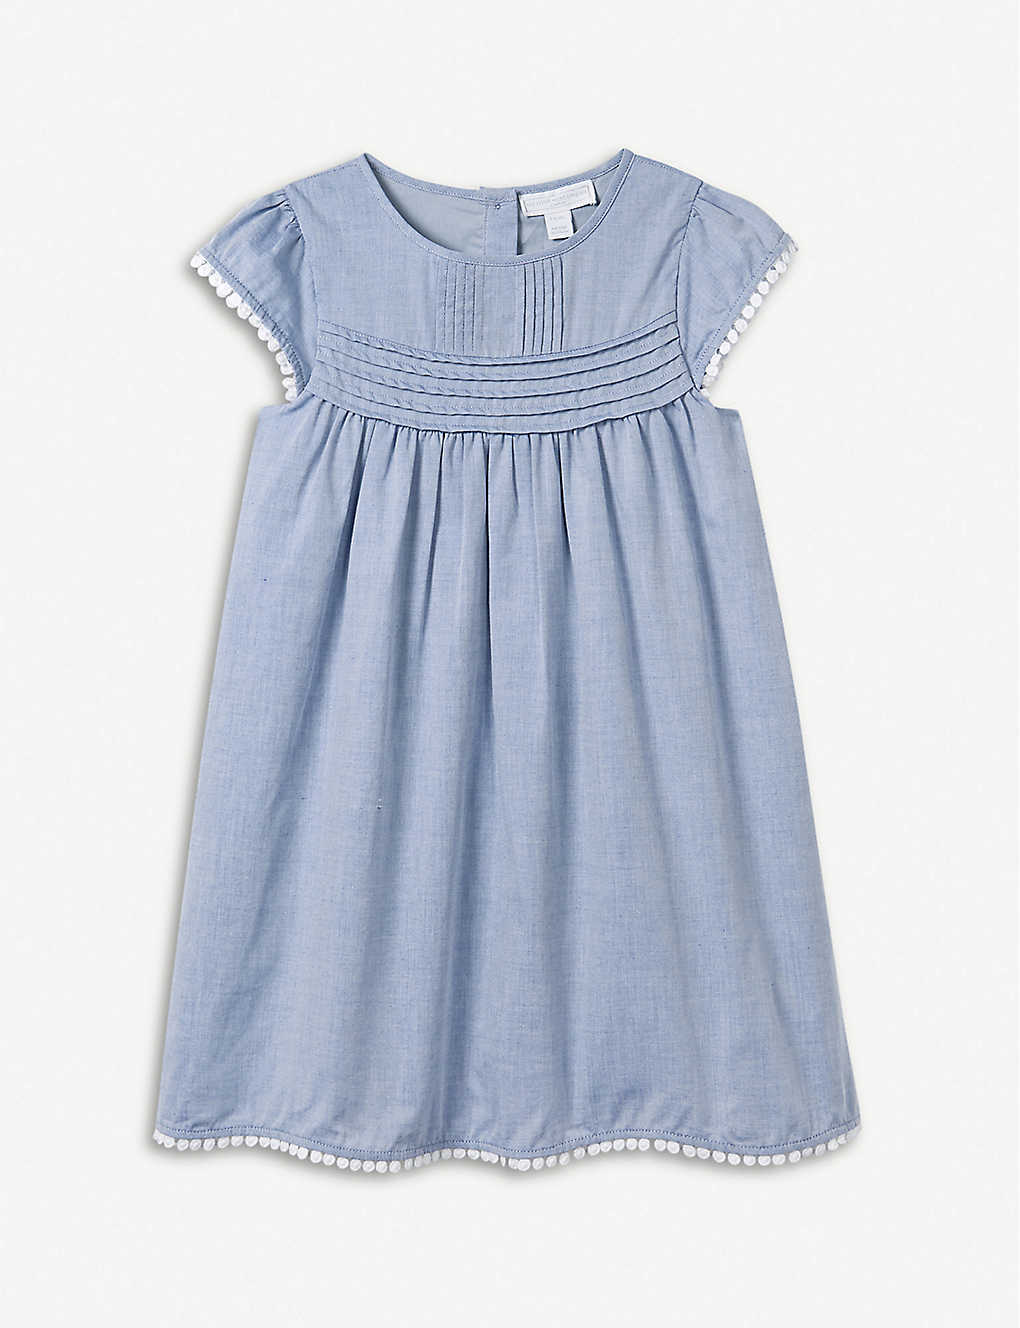 5d169f81295d THE LITTLE WHITE COMPANY - Pintuck chambray cotton dress 1-6 years ...